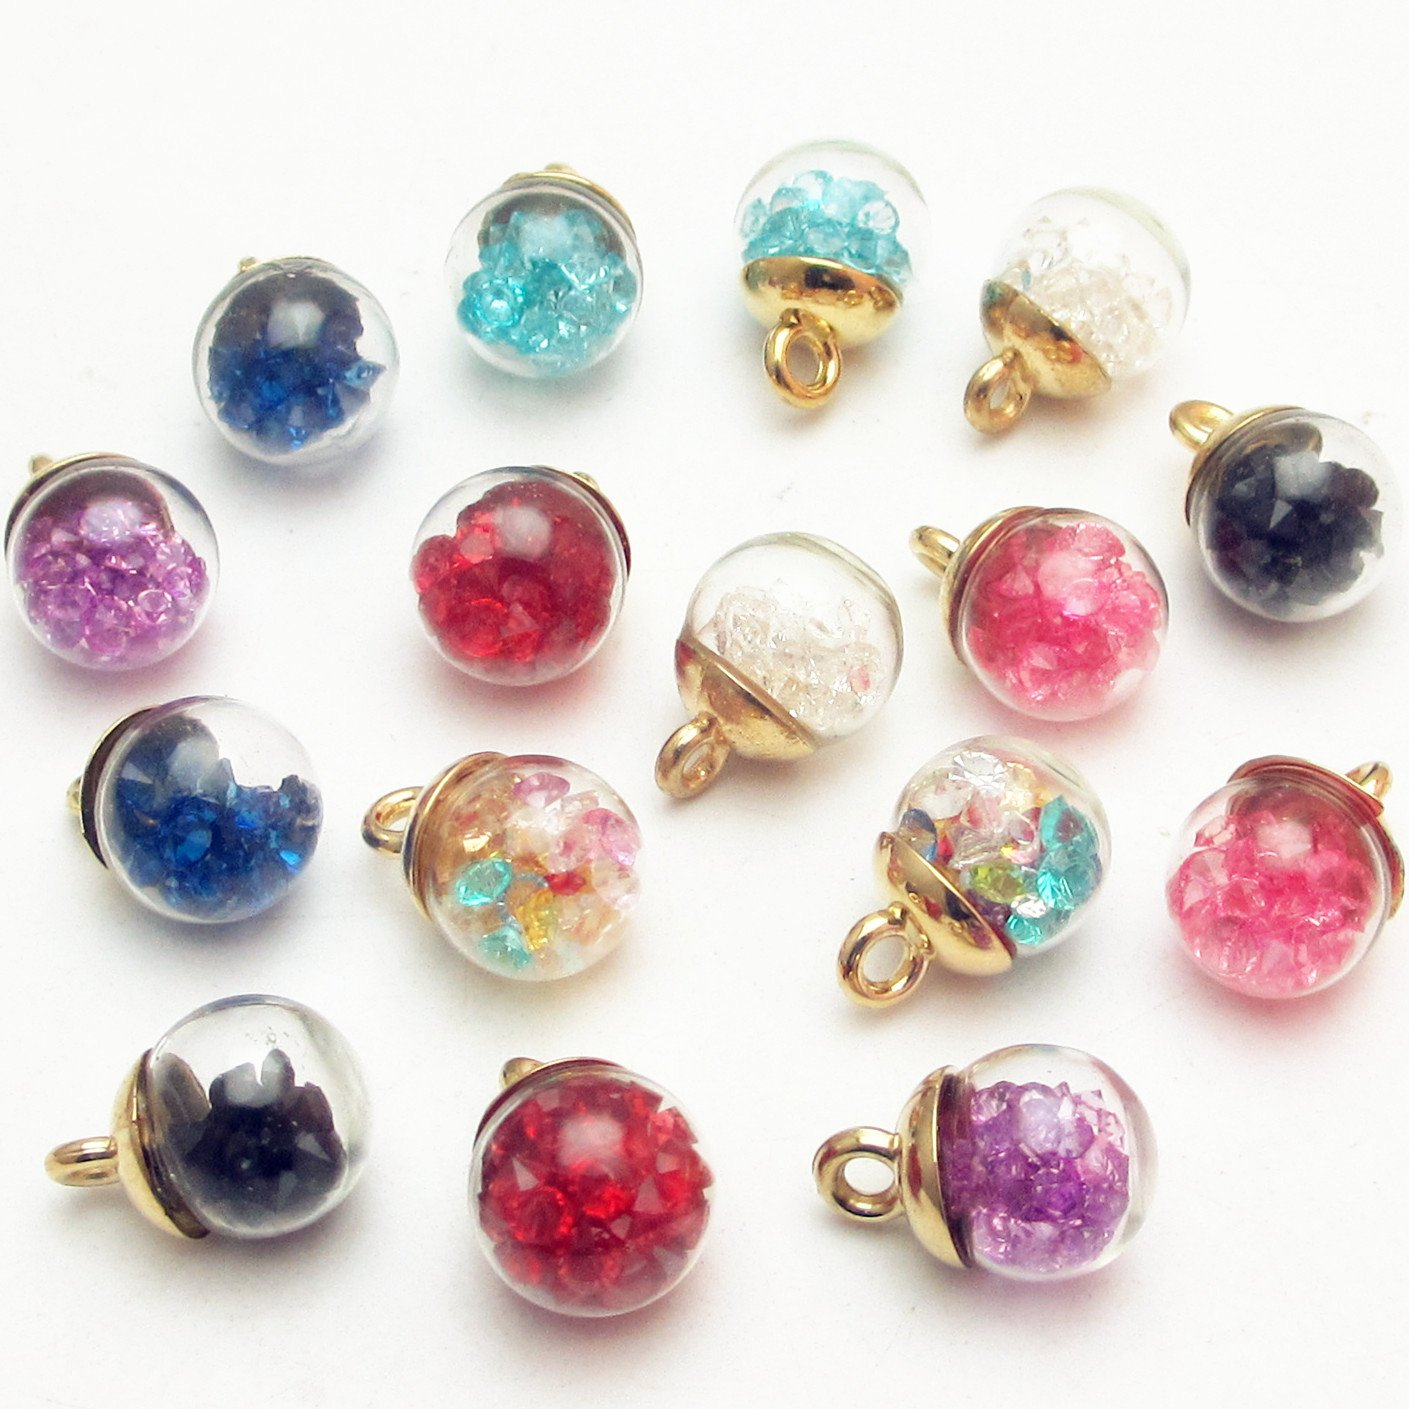 Colorful Mix Lots Assorted-Colors Antique Charms Glass Ball with Tiny Shiny Rhinestone Beads Pendant Craft Accessory Diy Necklace Bracelet Craft Jewelry Making Supply 0.48 Dandan DIY 16pcs 12mm